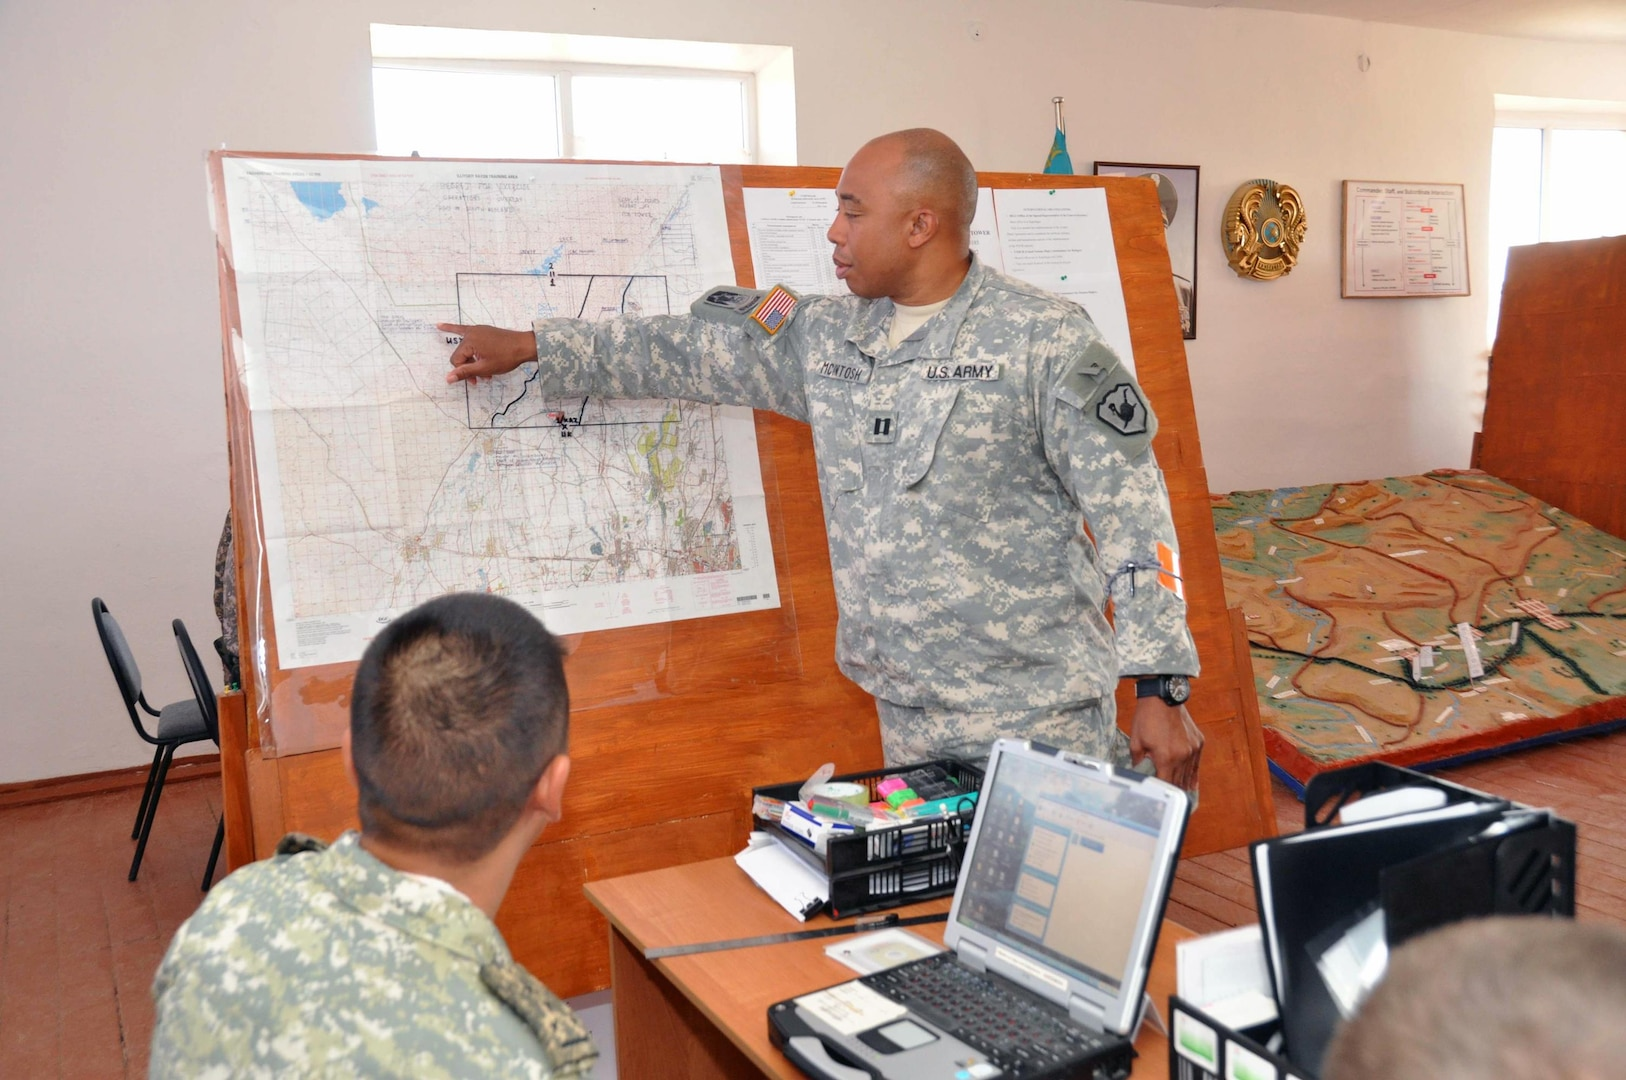 Army Capt. Terrannce McIntosh, standing, shows his Kazakh counterpart troop positions during Exercise Steppe Eagle 12, conducted in Kazakhstan in September 2012. Arizona and Kazakhstan have been partnered under the National Guard's State Partnership Program for 20 years.